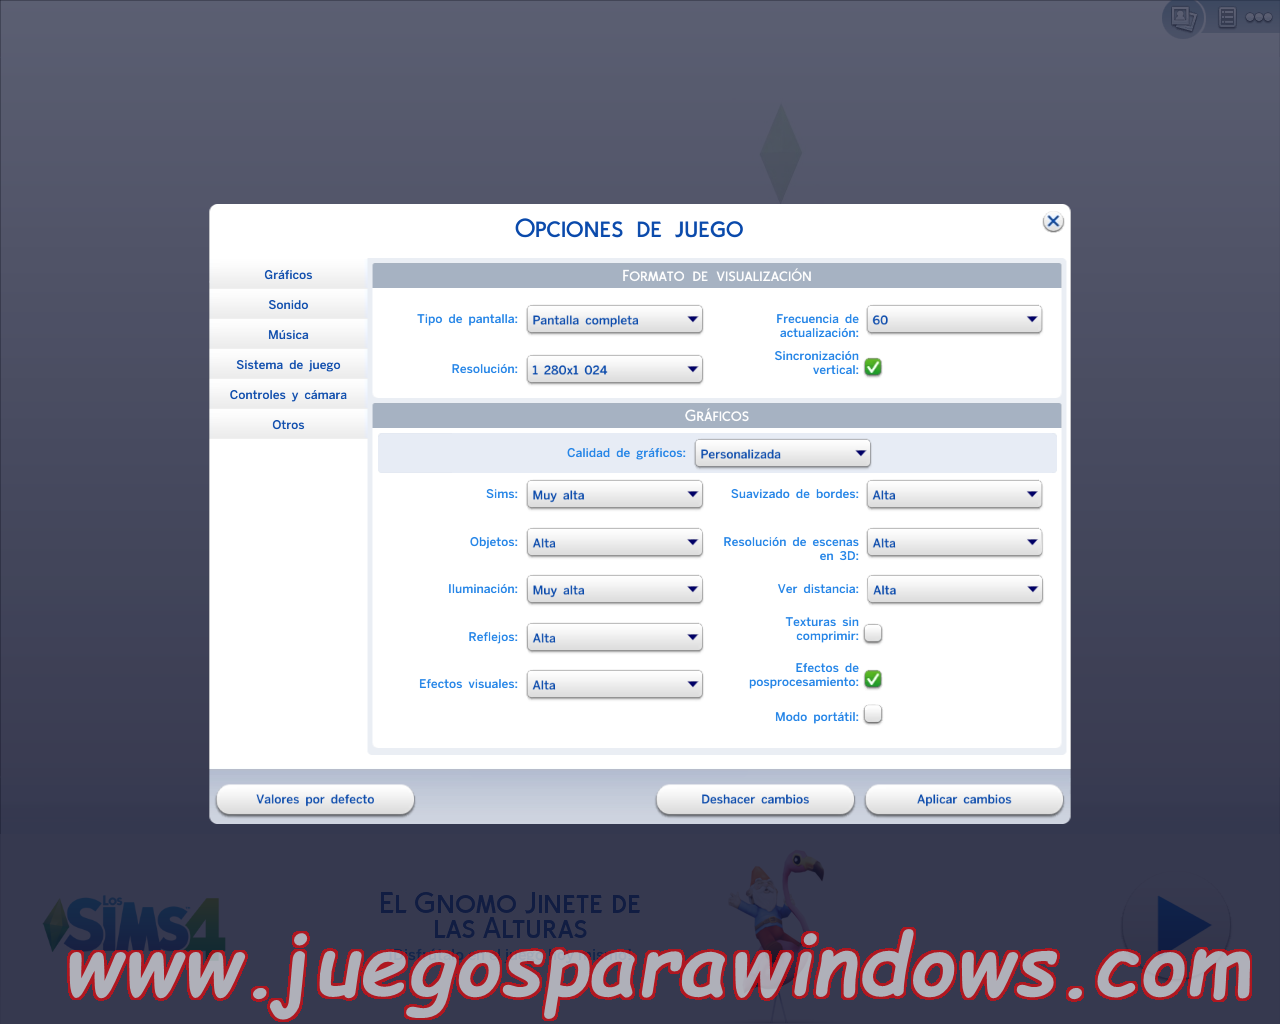 Los Sims 4 Digital Deluxe Edition ESPAÑOL PC Full + Update v1.4.83.1010 Incl DLC (RELOADED) 7